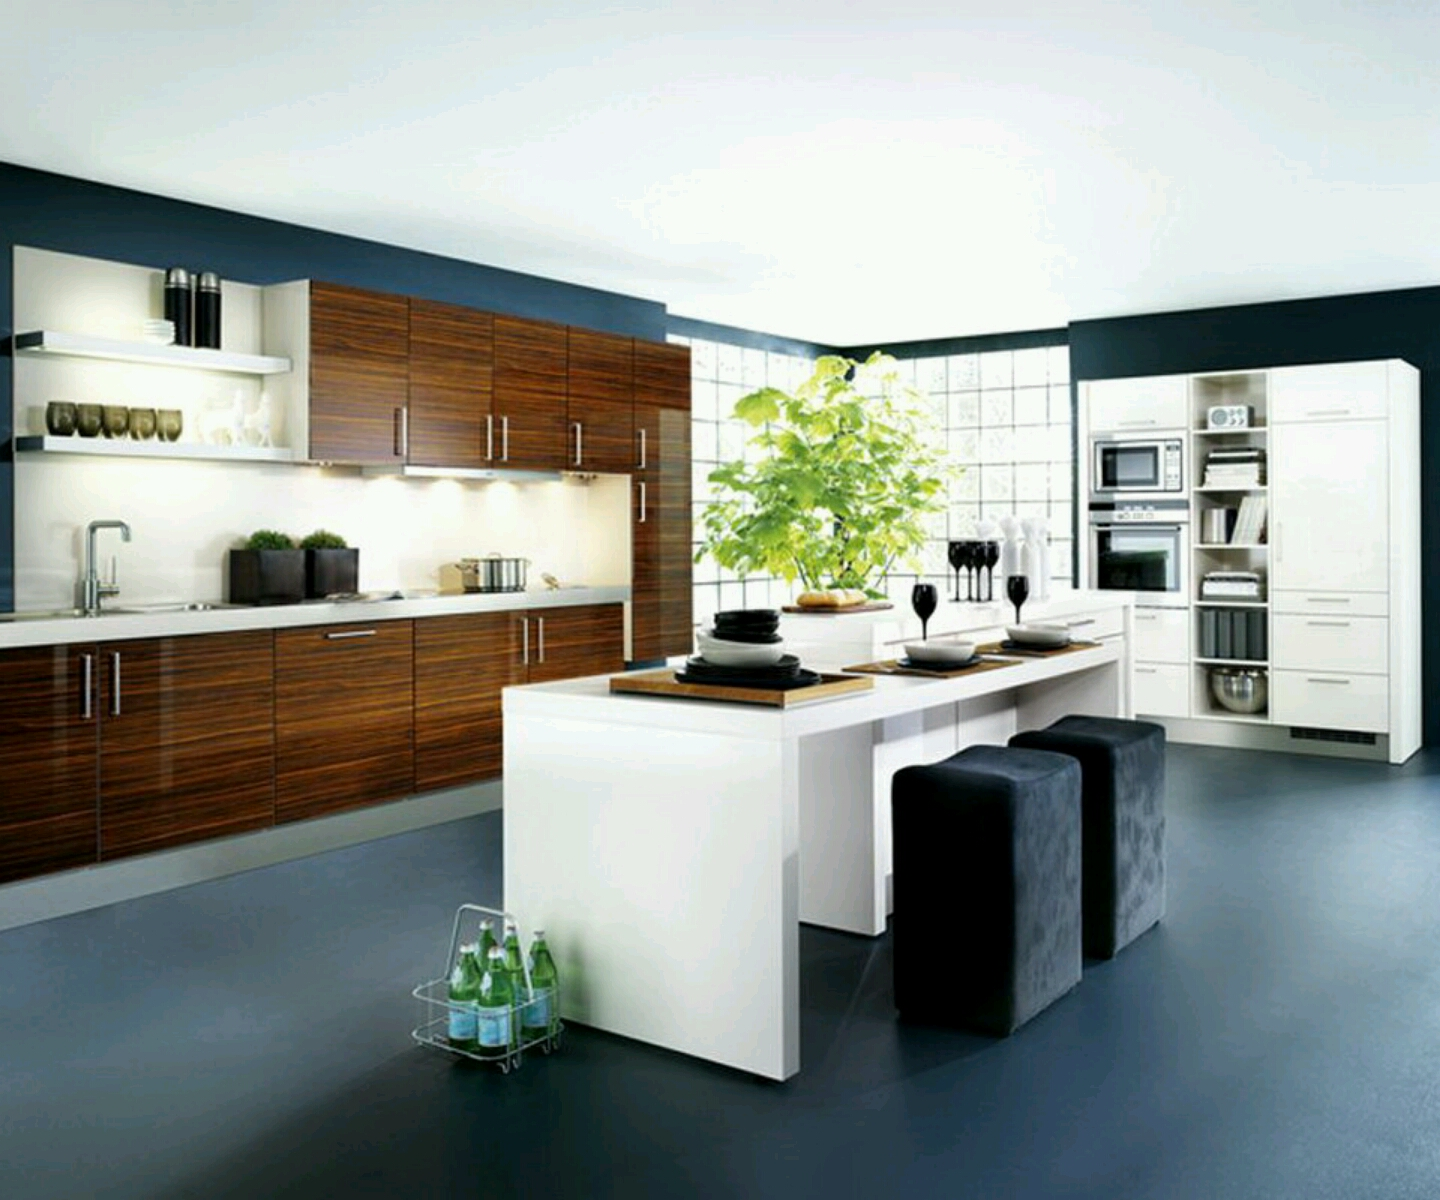 New home designs latest kitchen cabinets designs modern for Home kitchen style